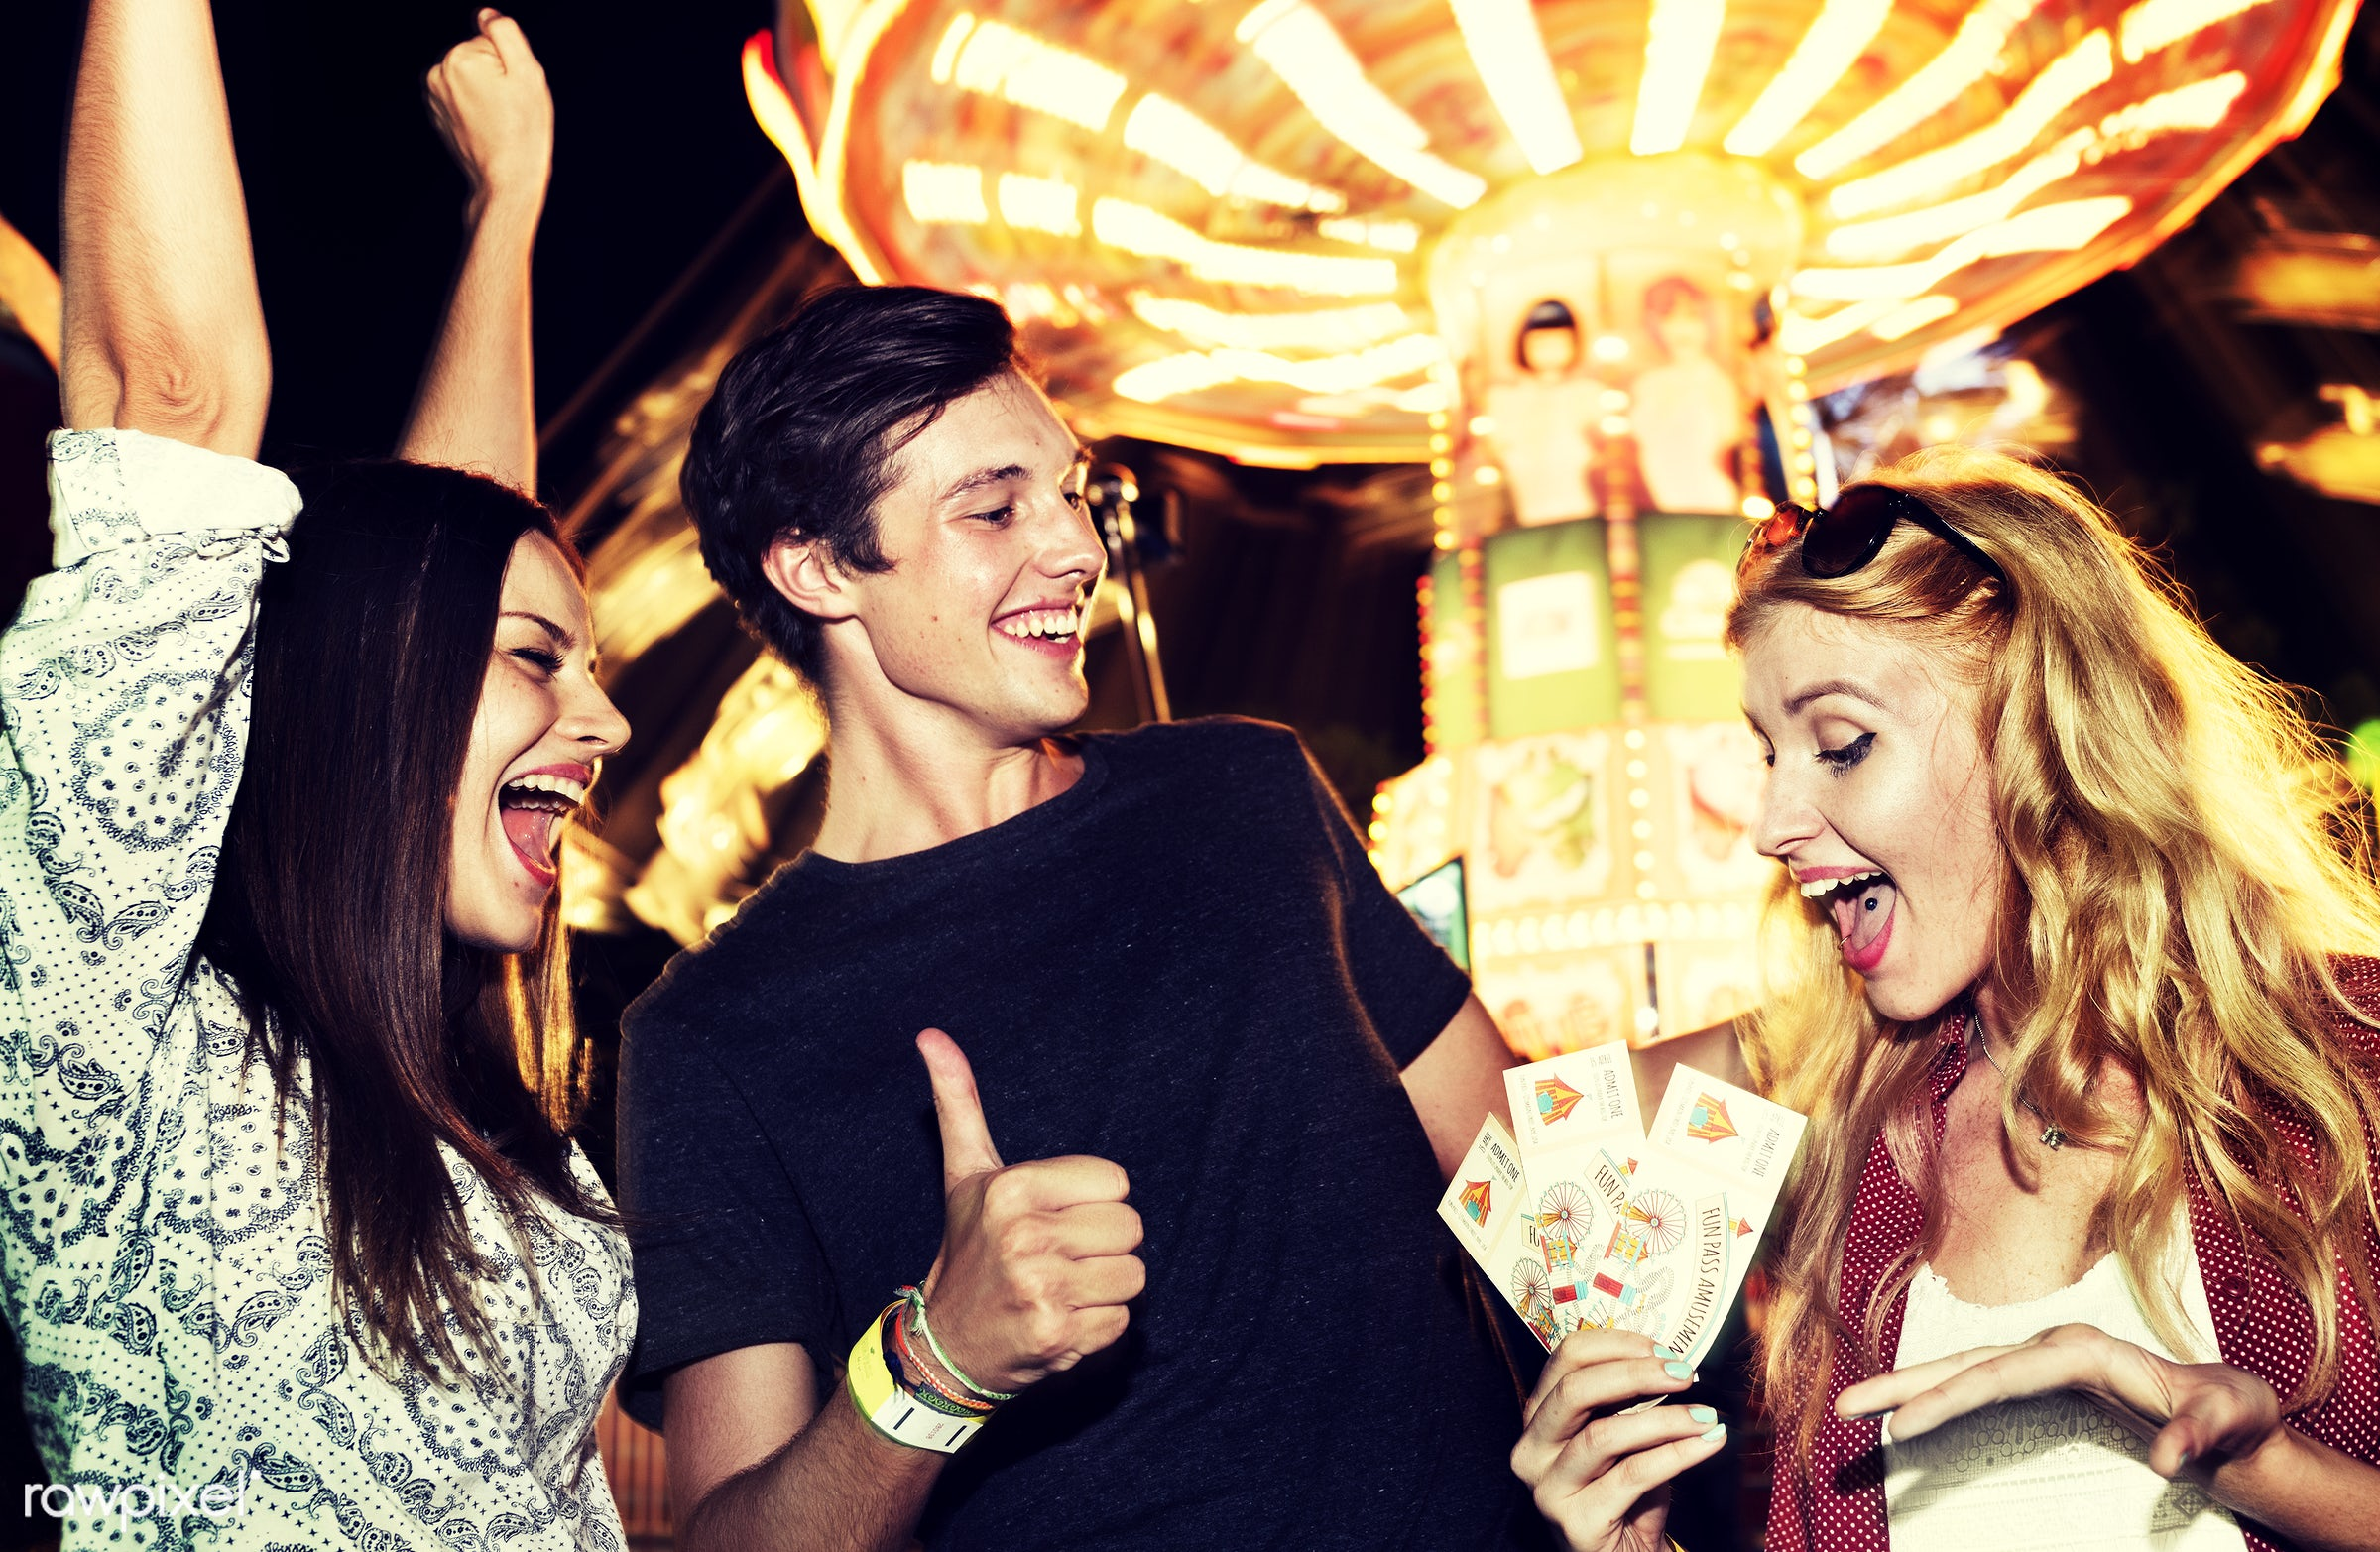 amusement, arms raised, boy, cheerful, enjoy, excited, excitement, fashion, friends, friendship, fun, girls, group, guy,...